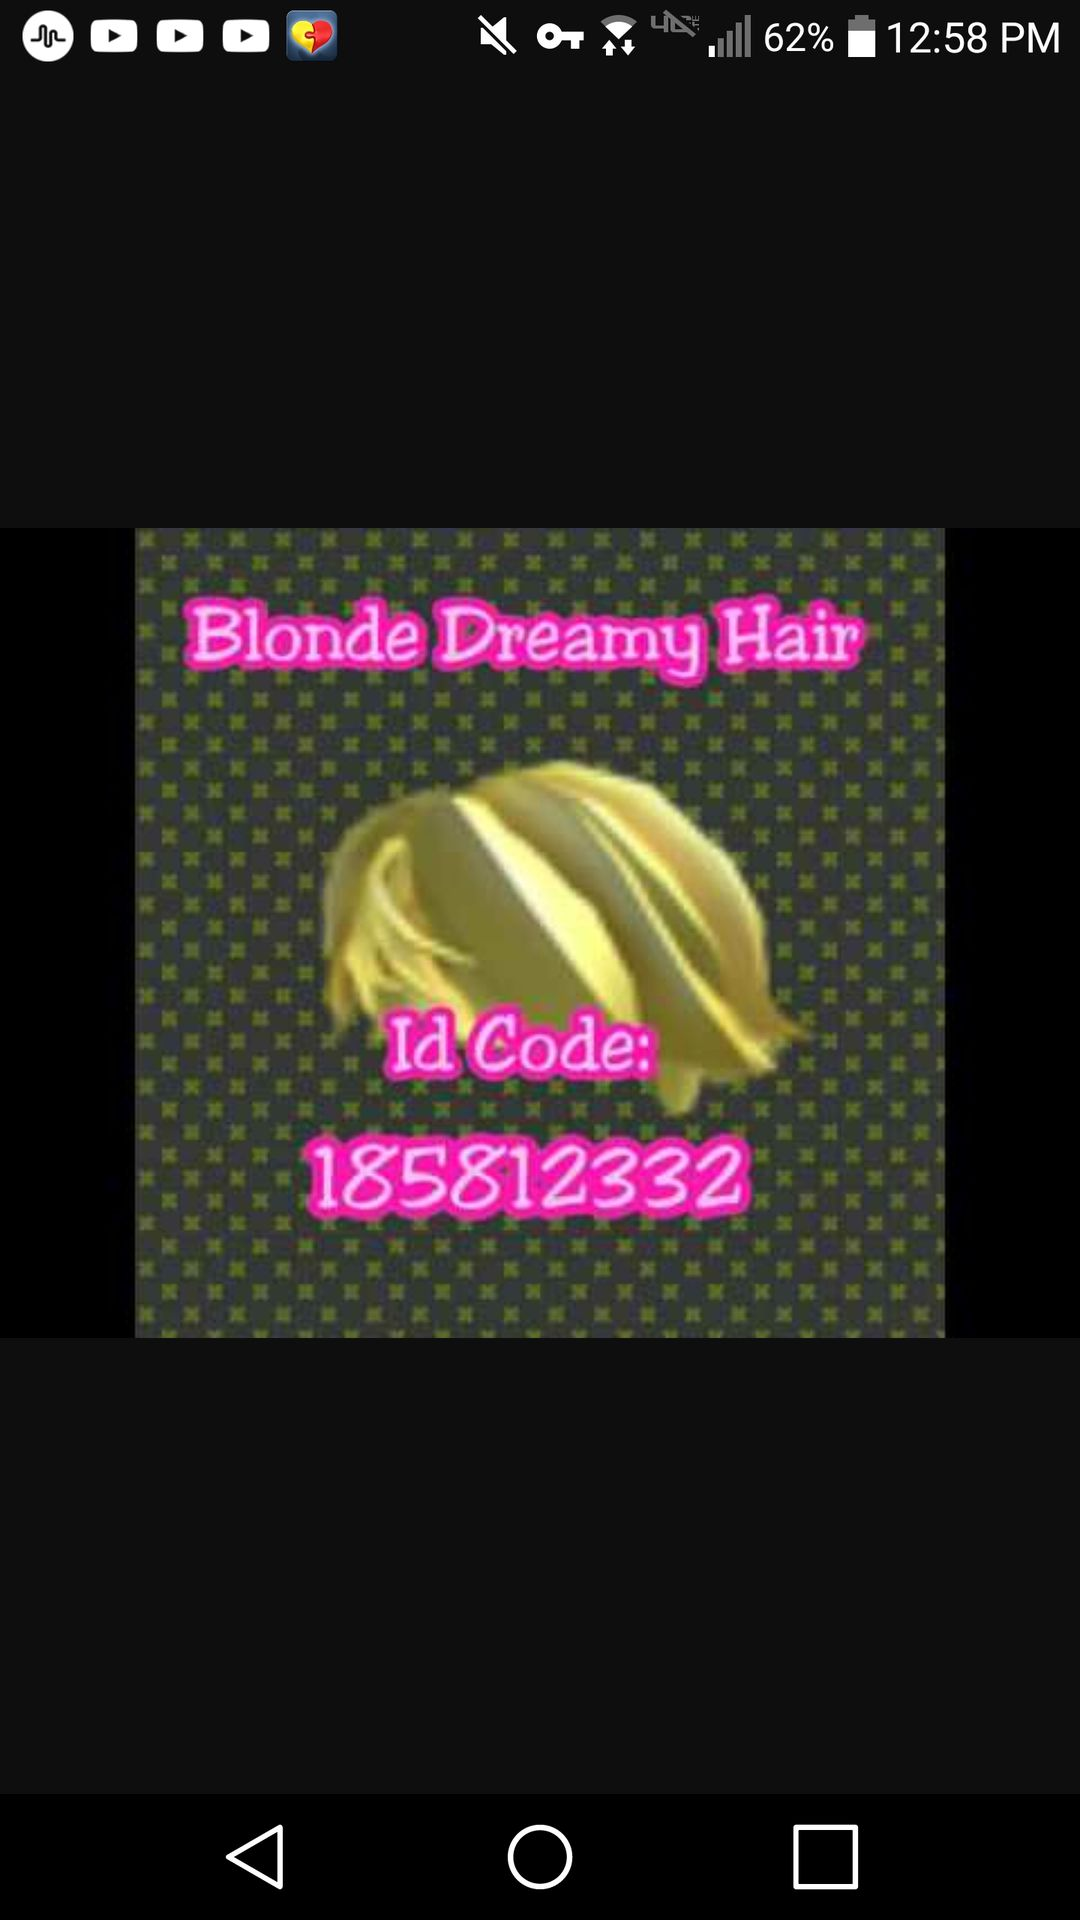 ROBLOX IDS - blonde dreamy hair - Wattpad